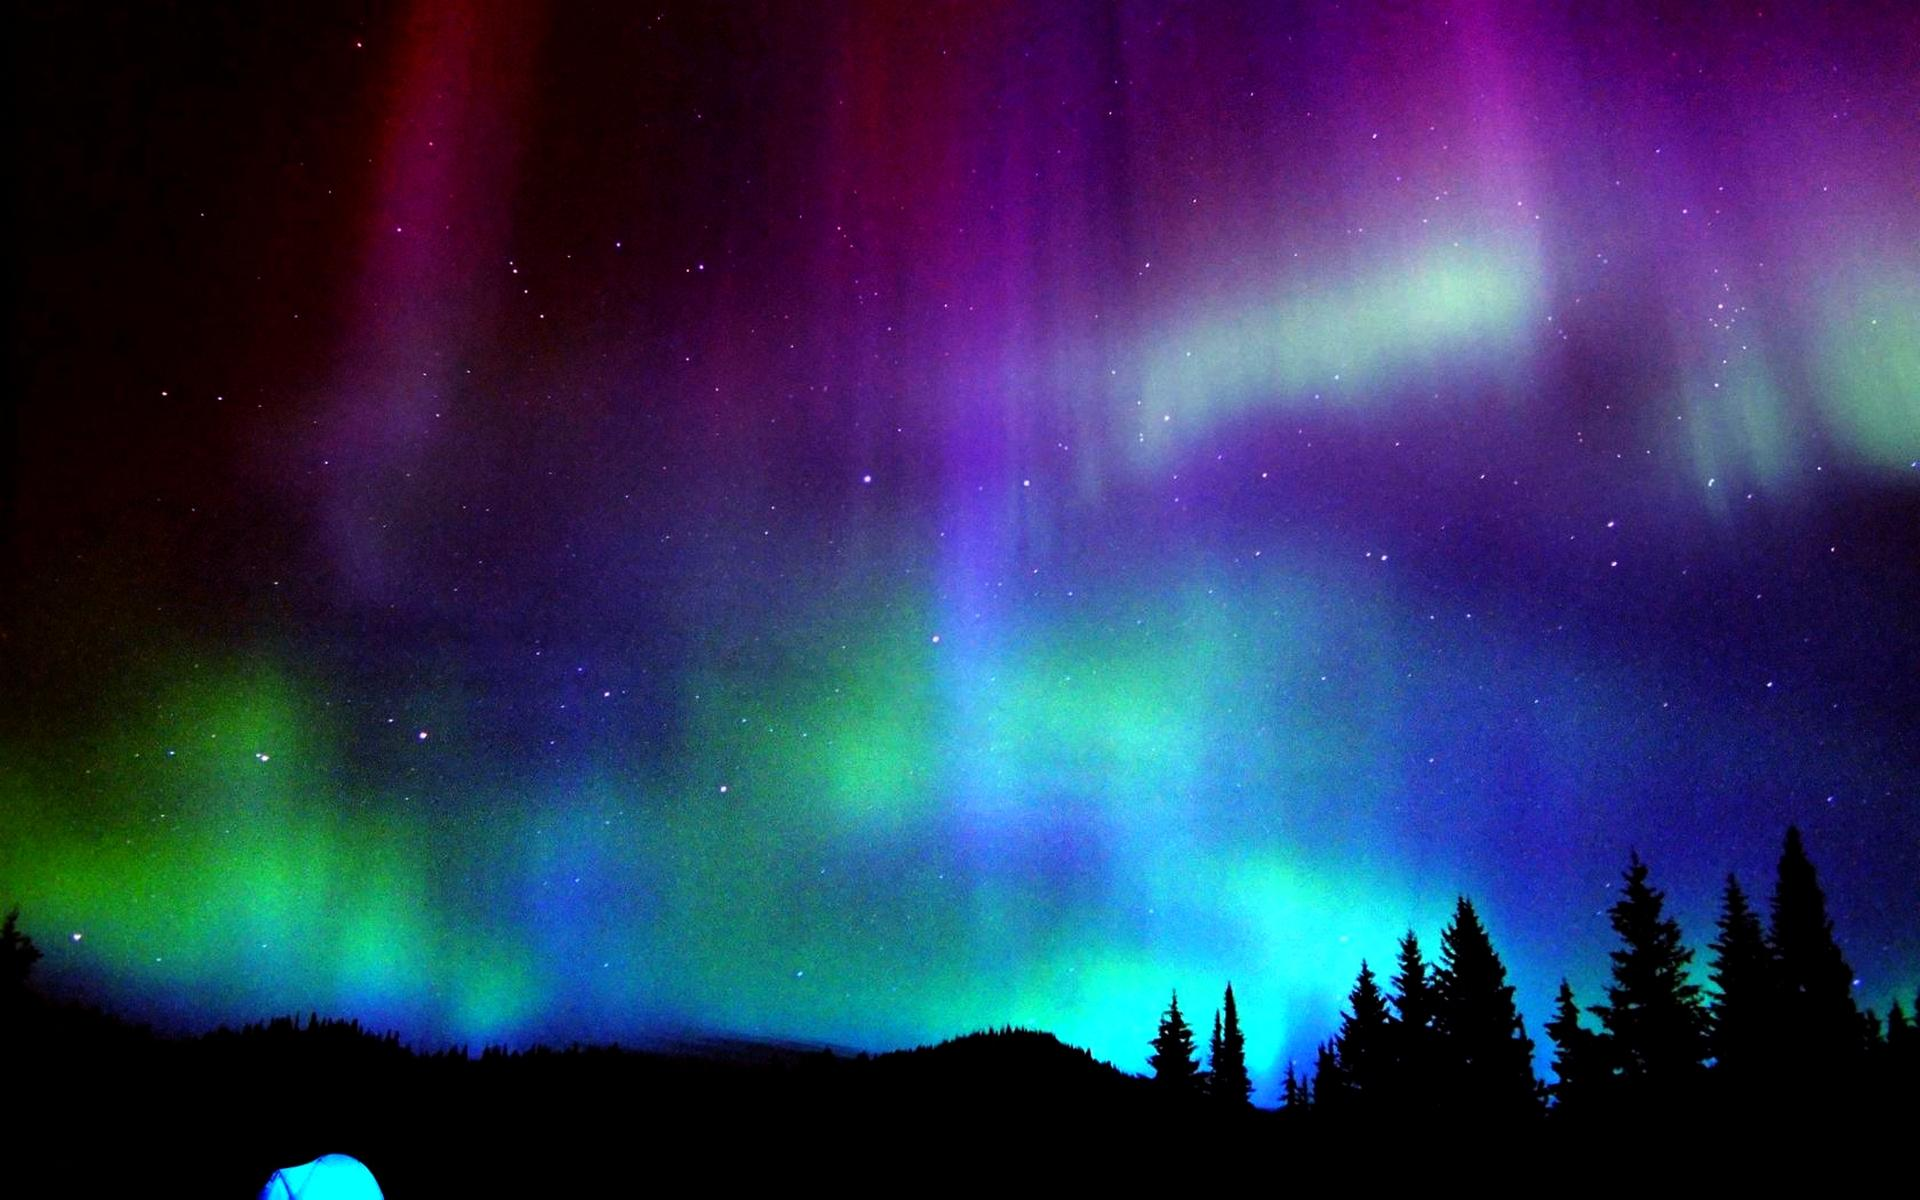 Wolf Aurora Wallpapers - Top Free Wolf Aurora Backgrounds ... on